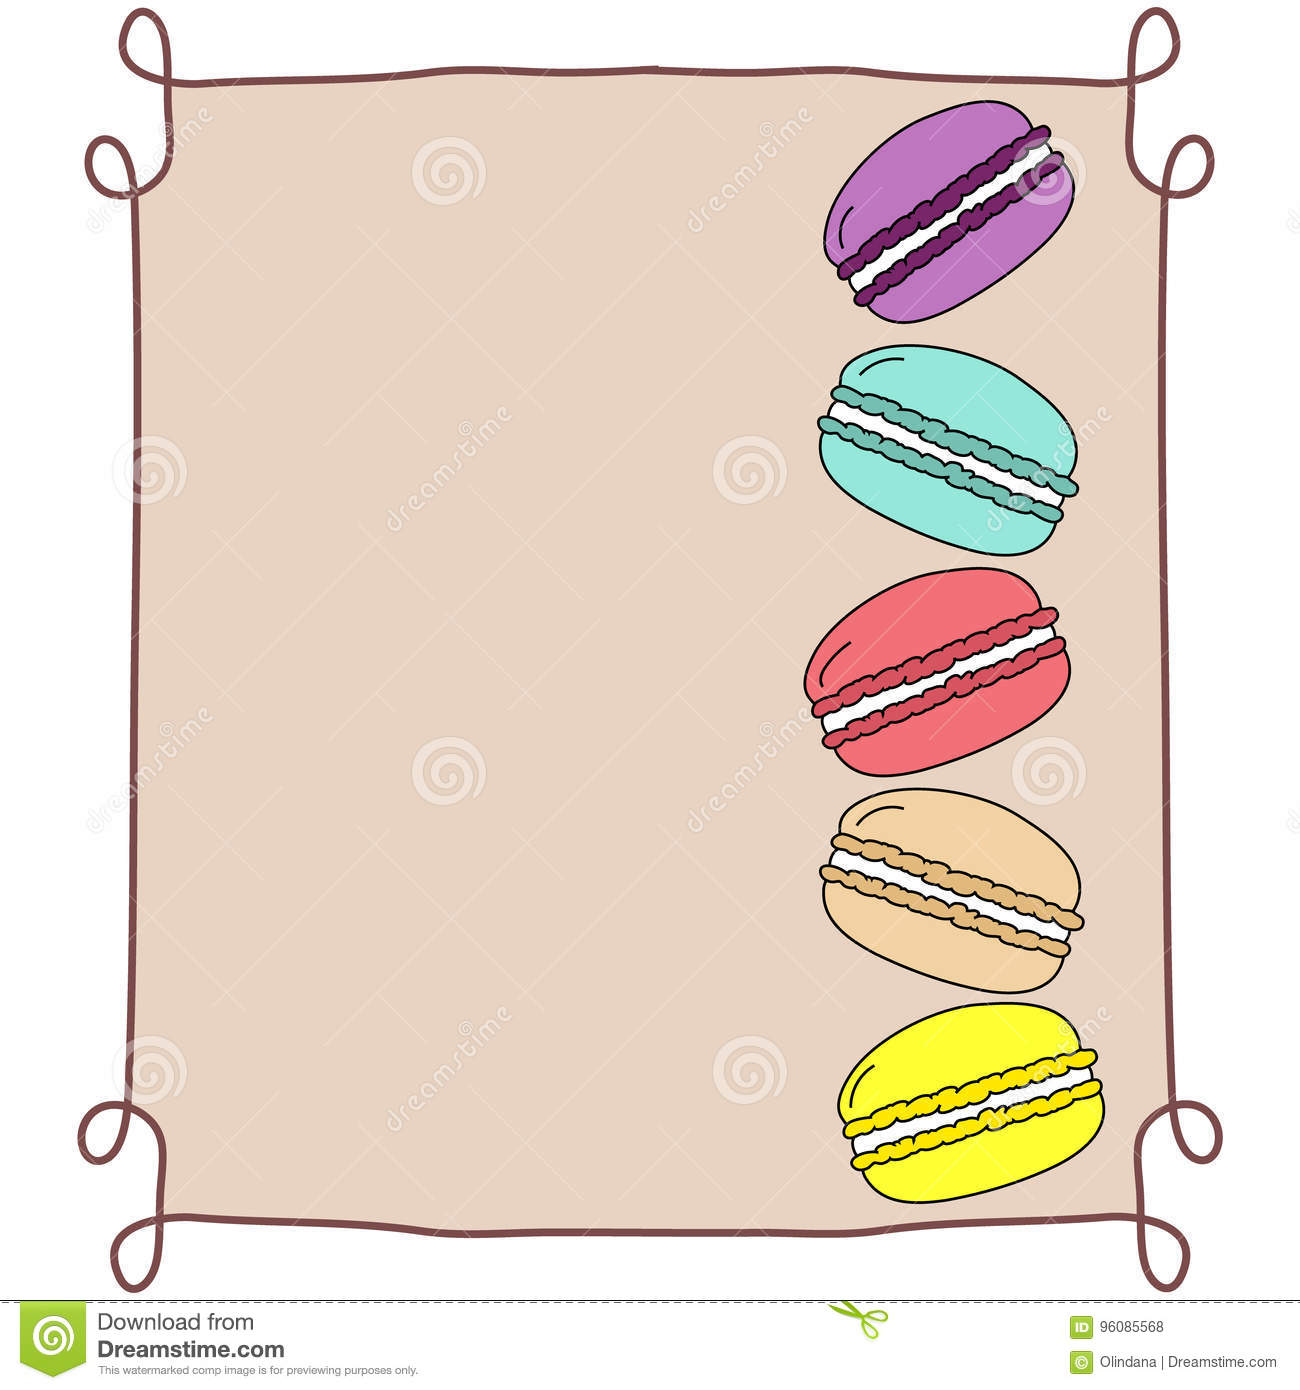 colorful doodle hand drawn macarons stacked in vintage frame on